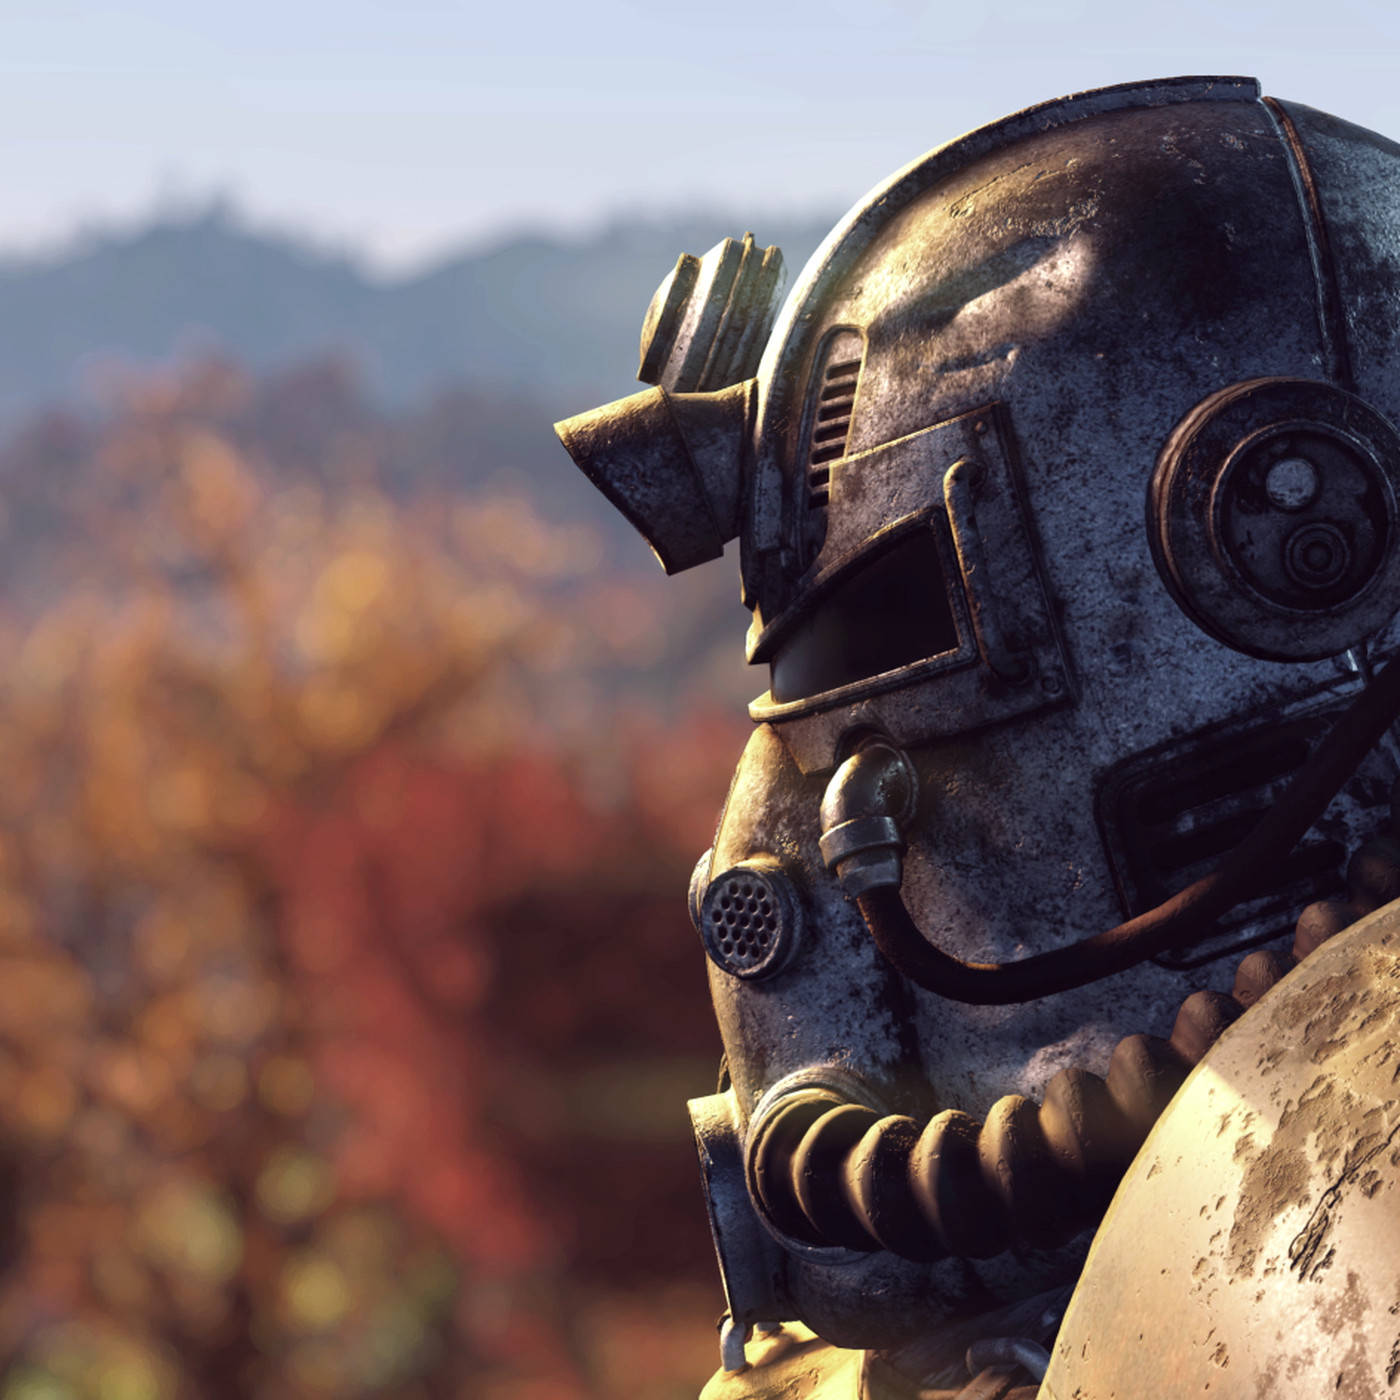 Fallout 76 players say patch 11 is a big mess - Polygon